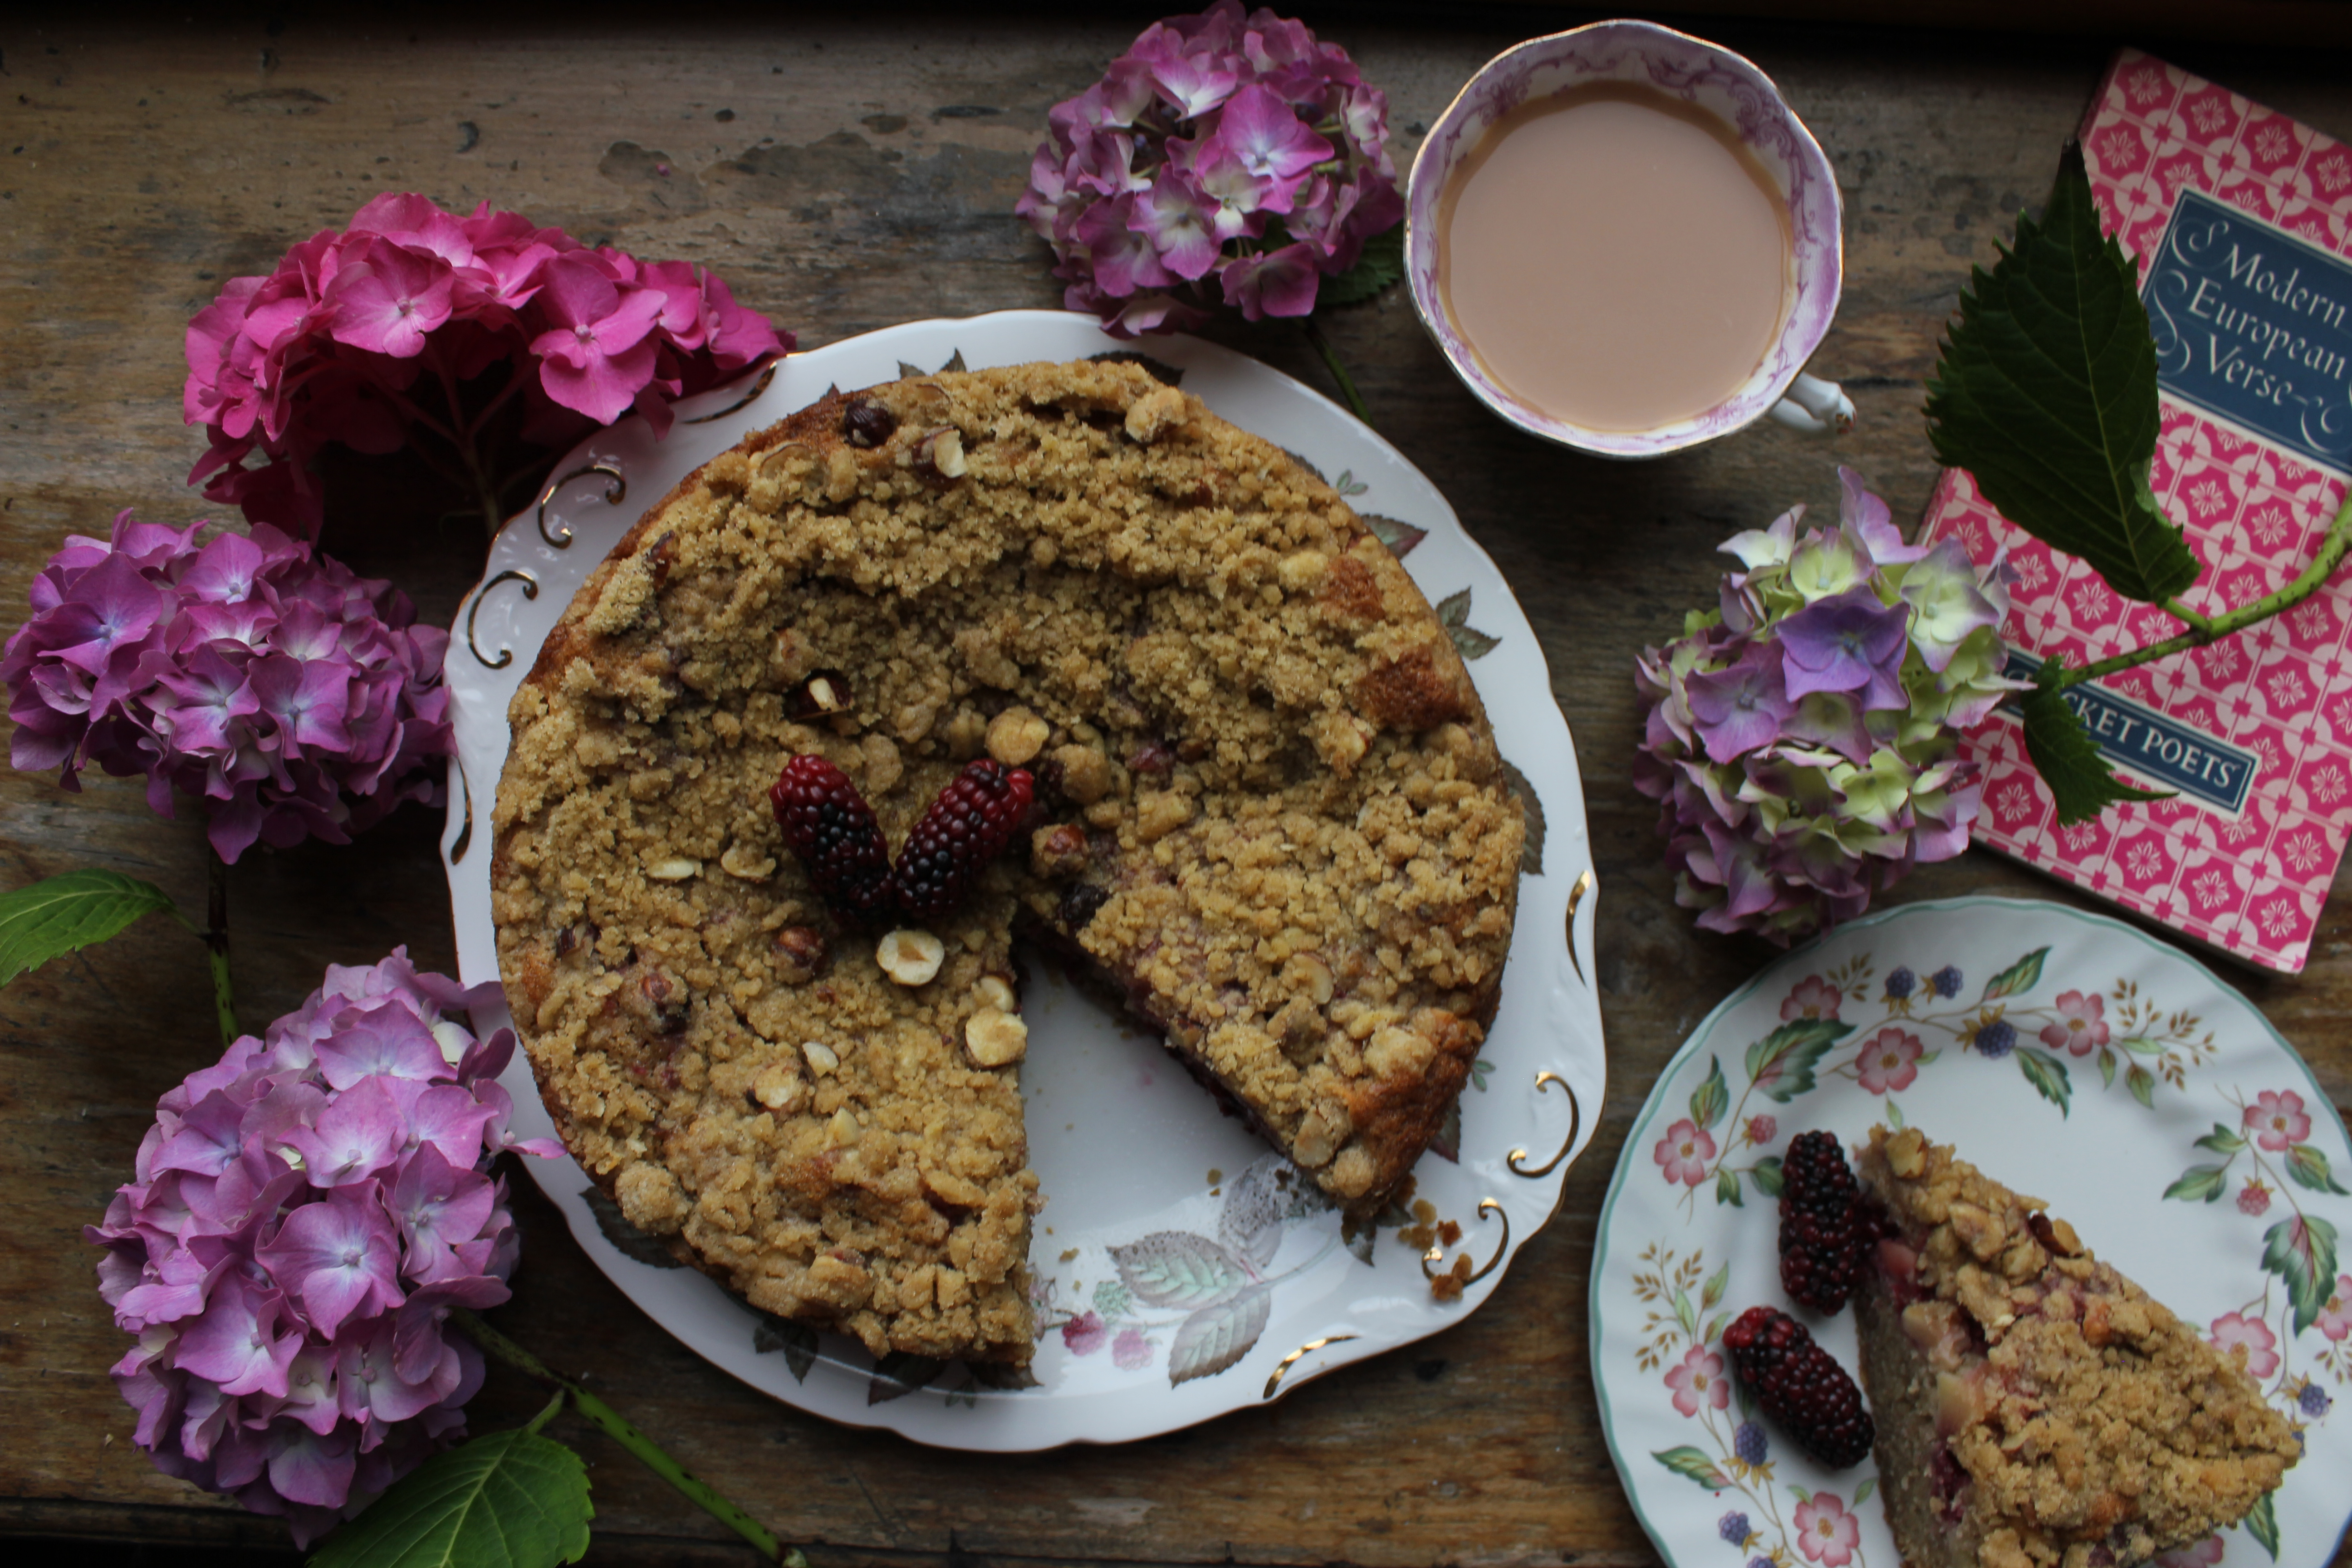 Blackberry, apple and cobnut crumble cake